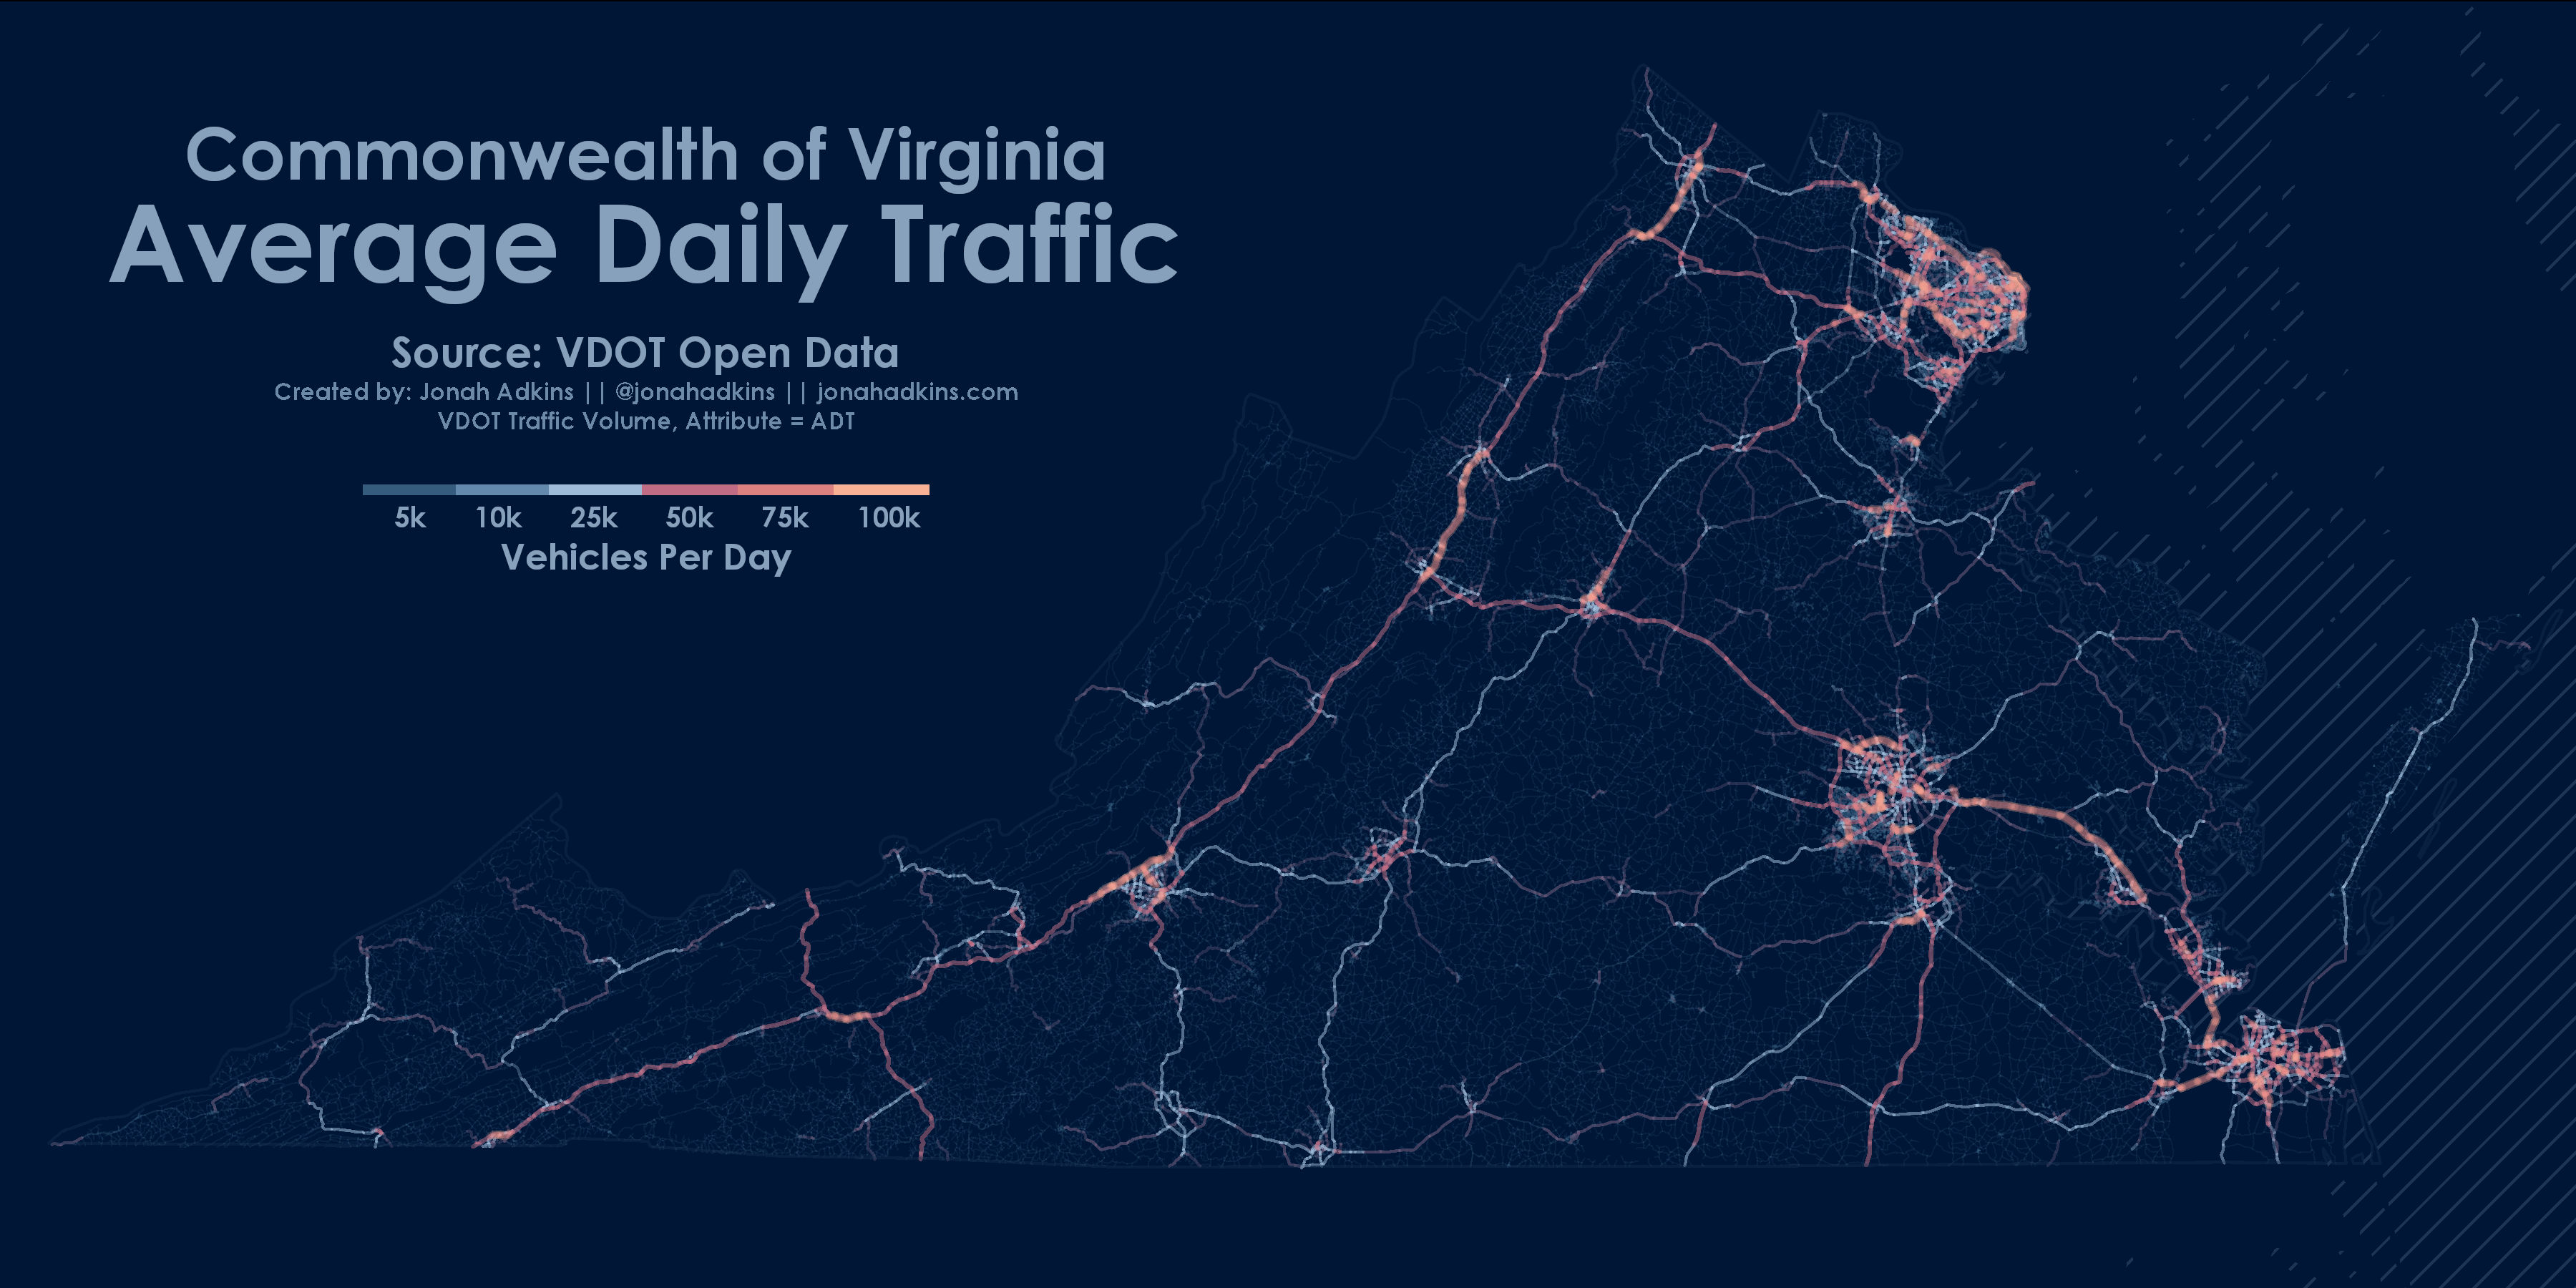 Vdot Traffic Map.The Open Data Roads Of Virginia It All Started With A Map